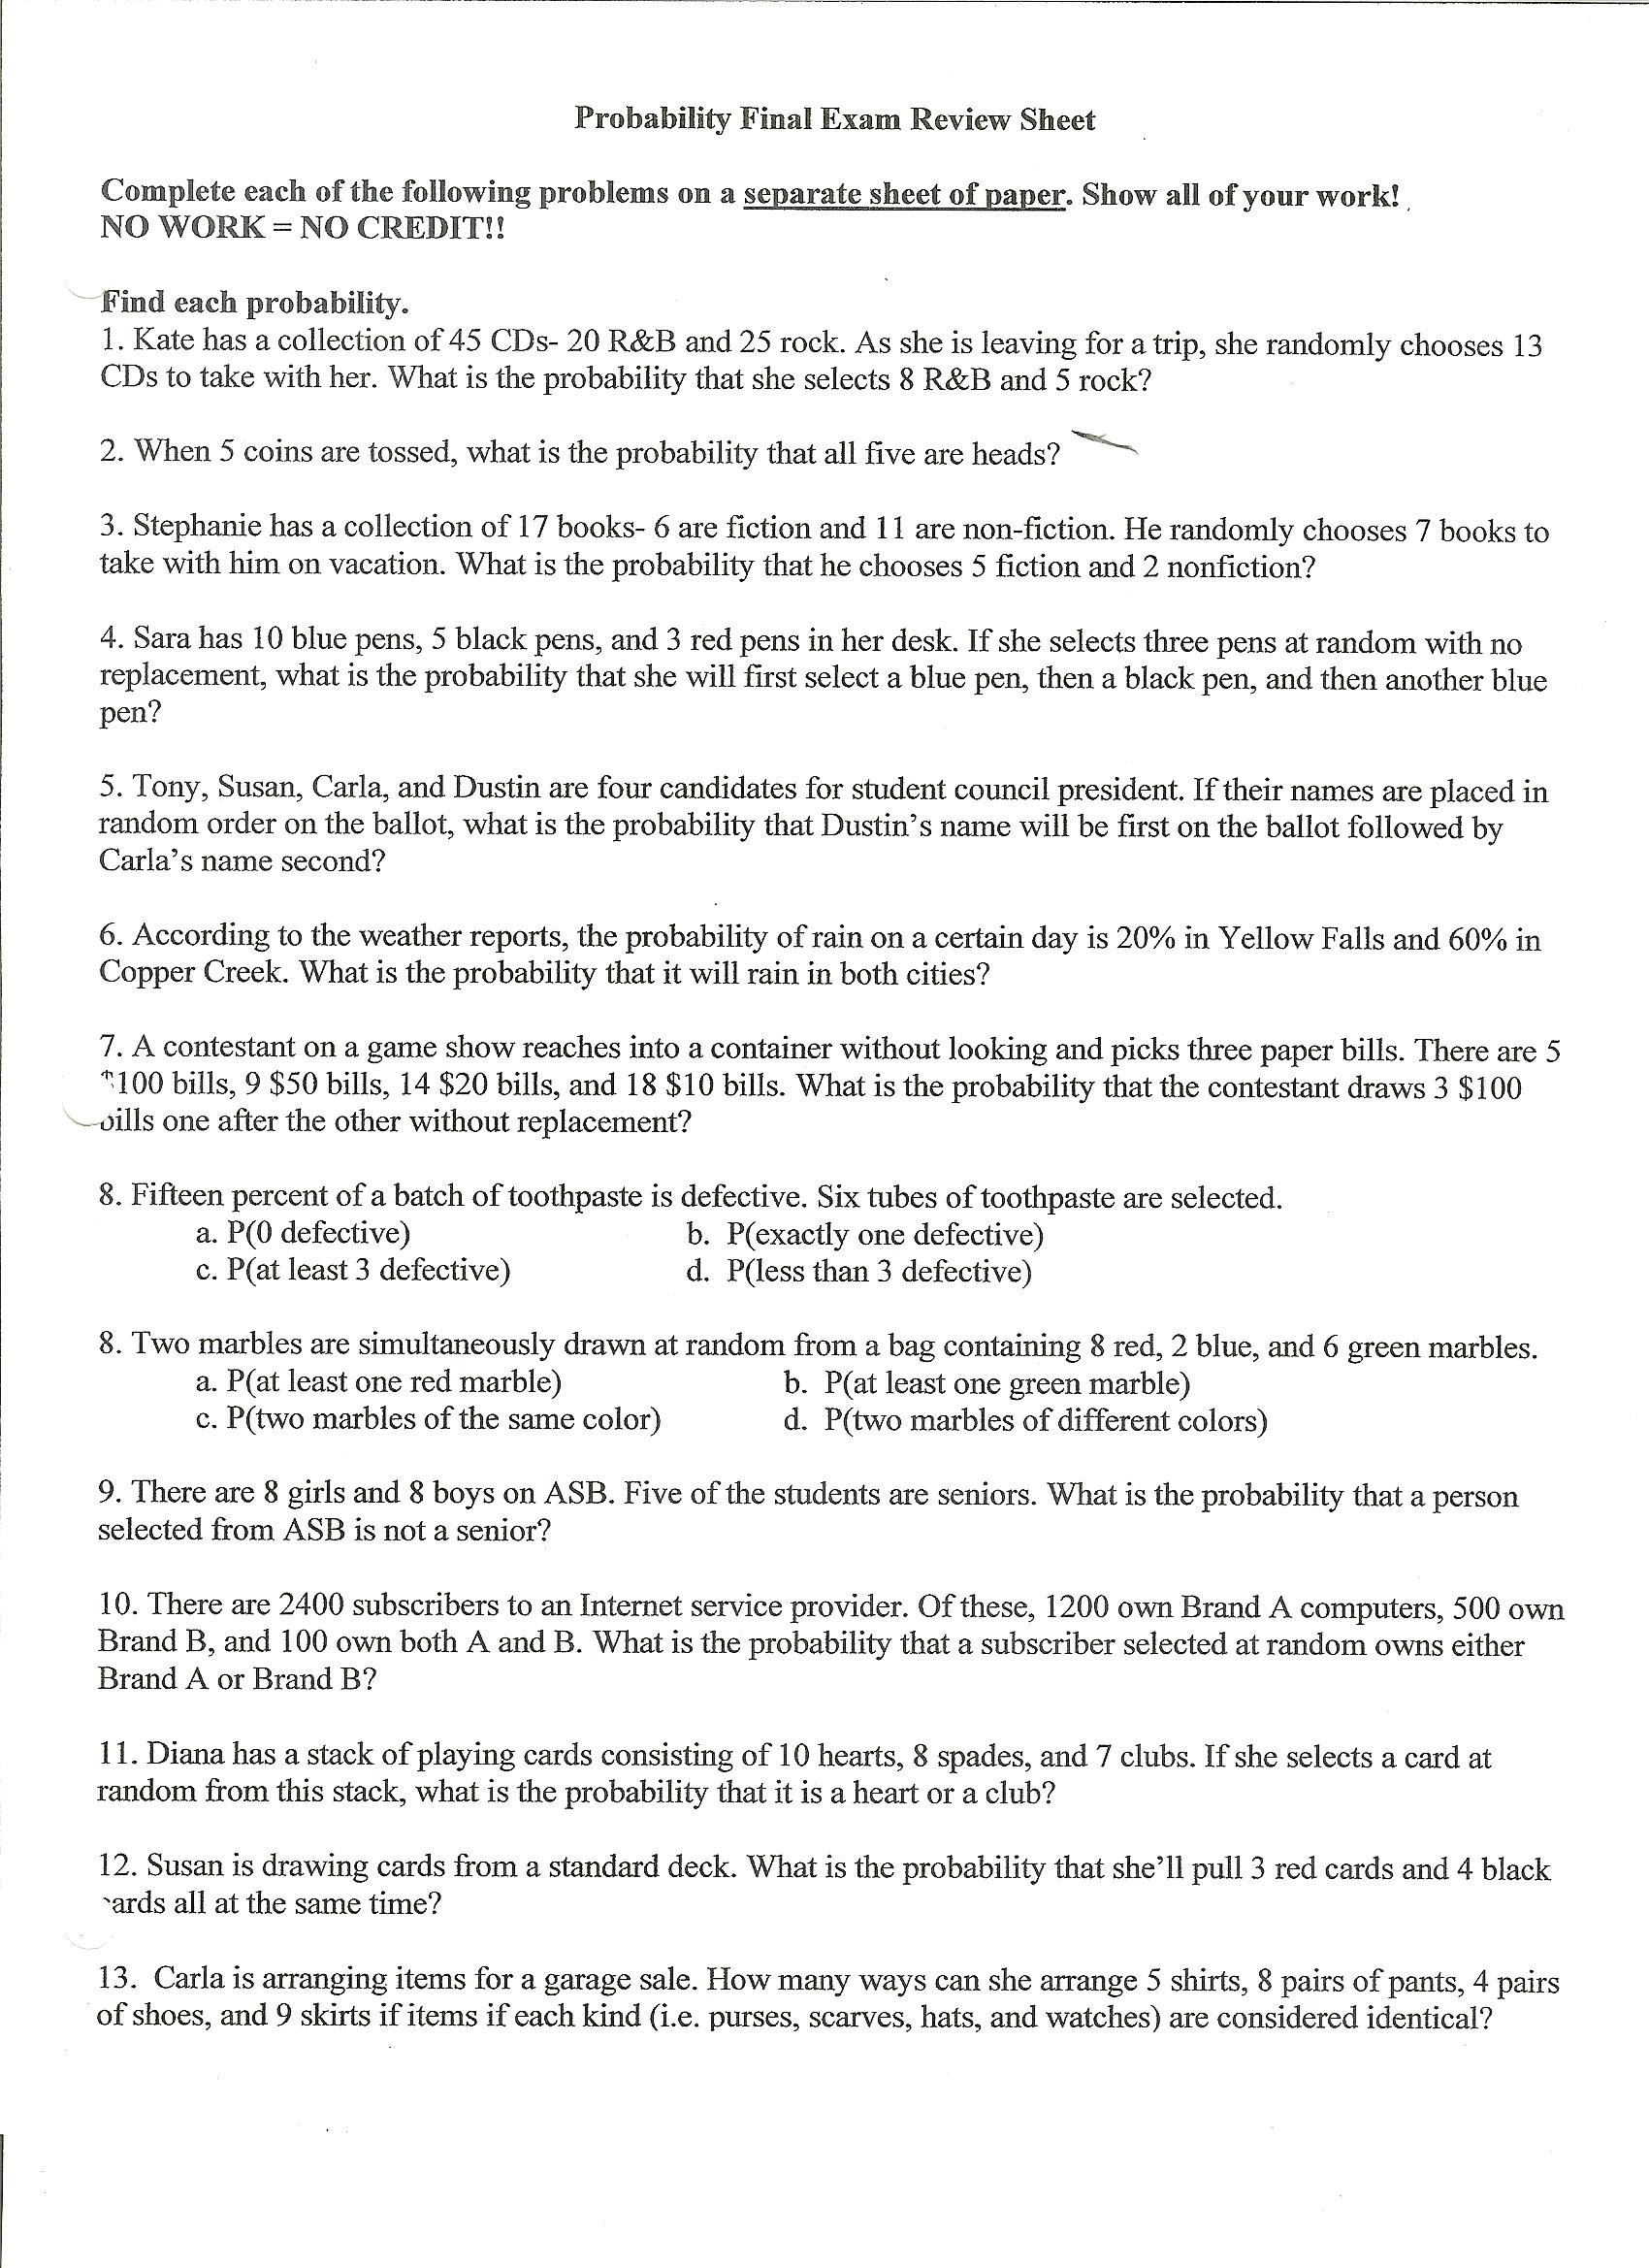 worksheet Probability Review Worksheet probability final exam review sheet 001 jpg jpg